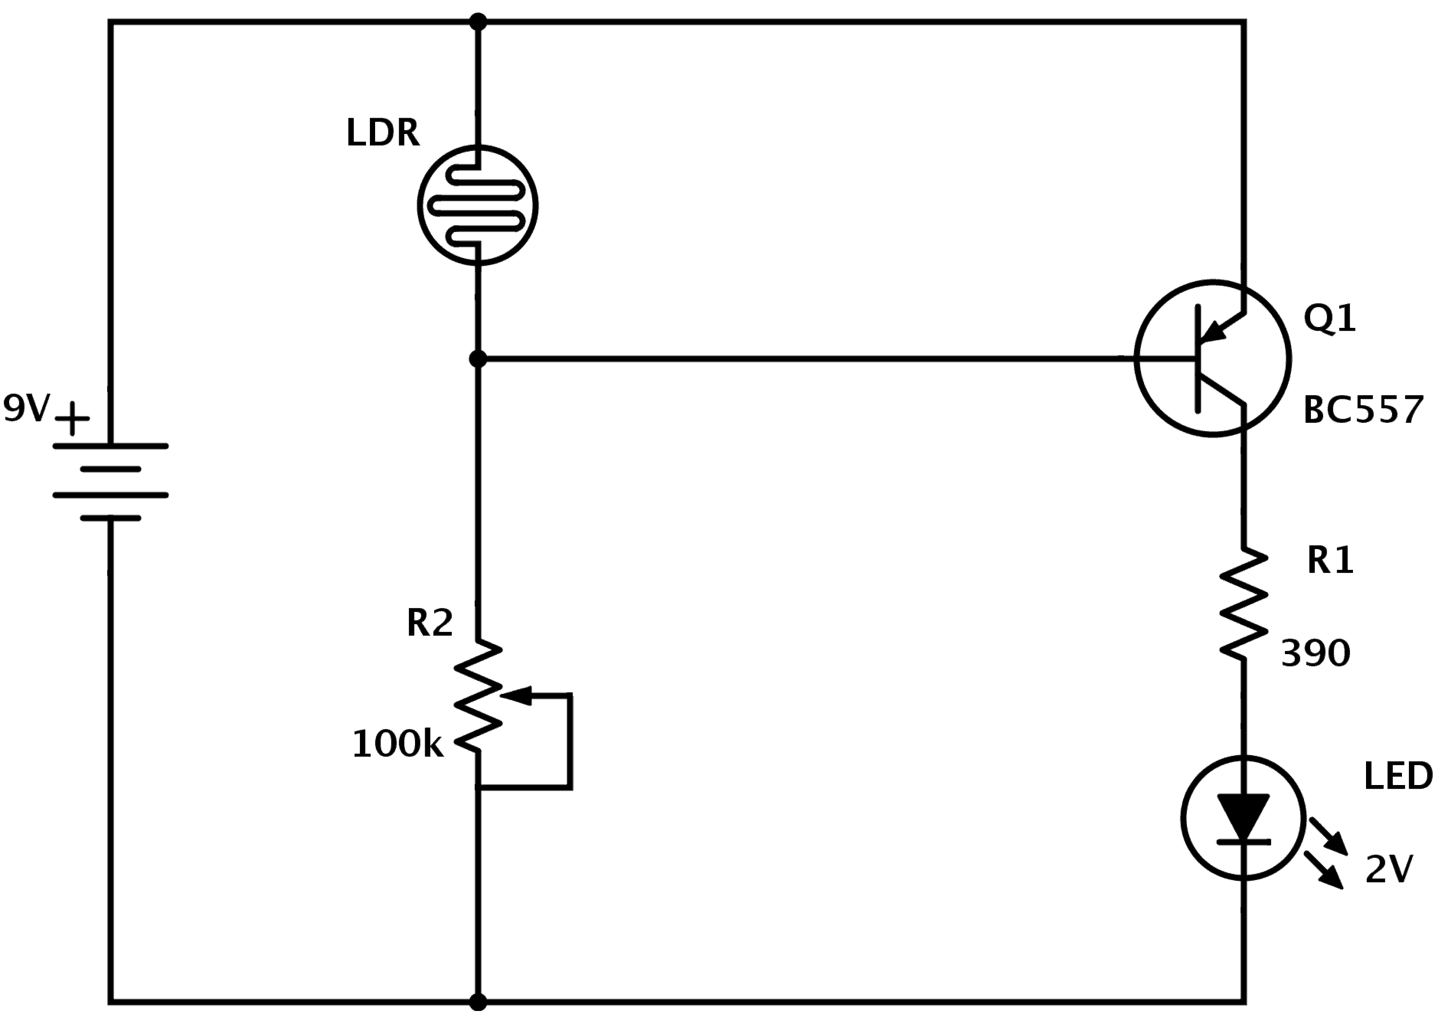 Ldr Circuit Diagram Build Electronic Circuits Model Locomotive Infrared Controller With Pnp Transistor Dark Detector